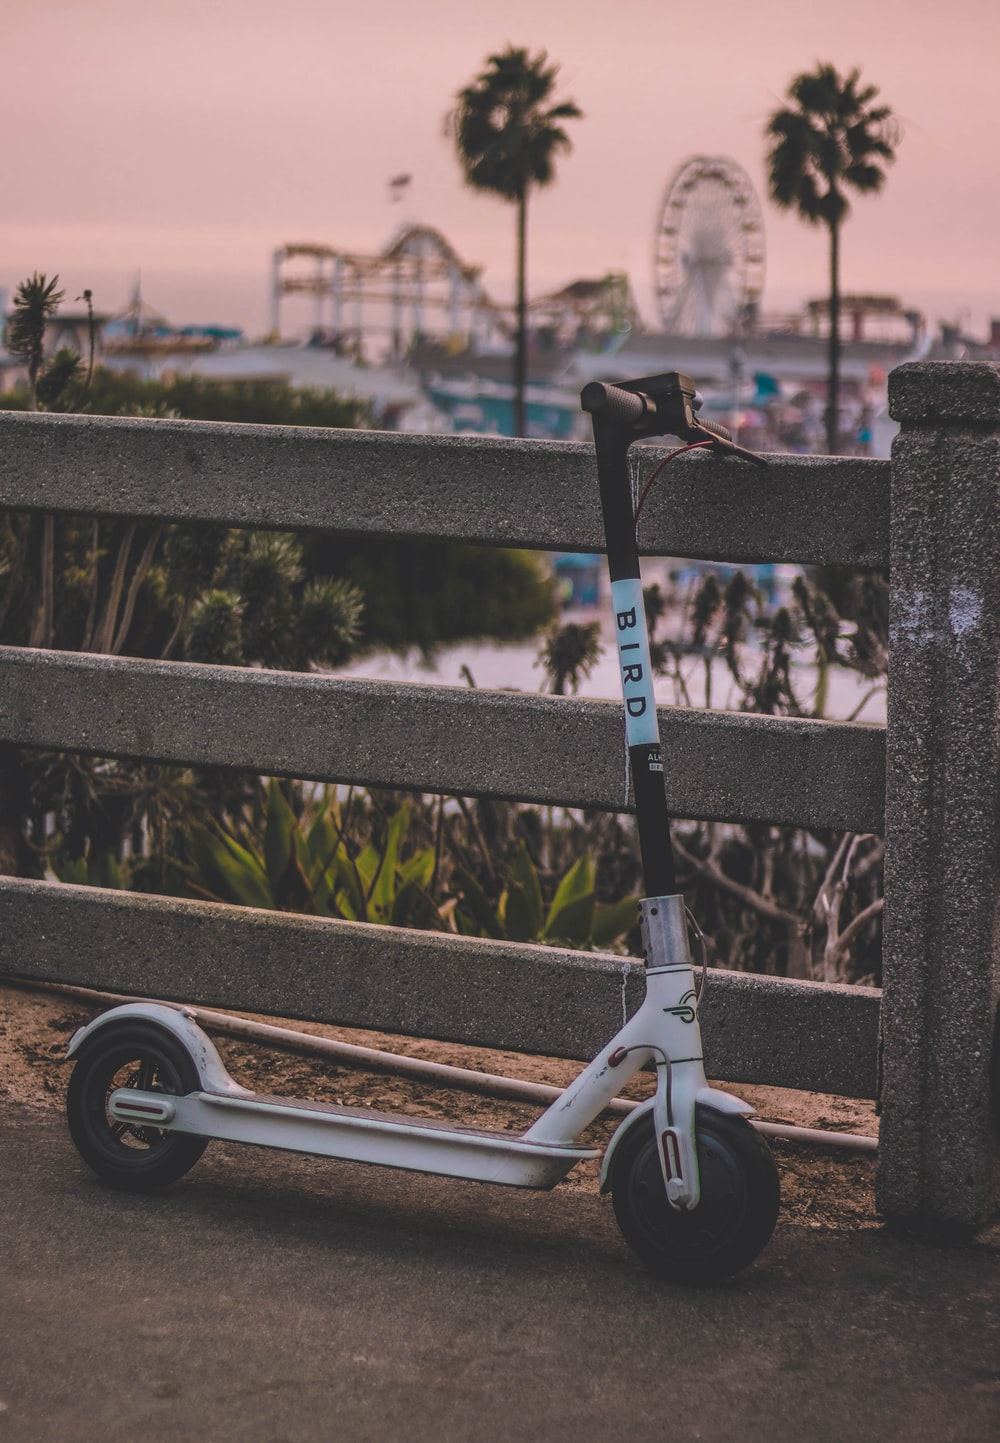 white Bird kick scooter parked on concrete wall overlooking park